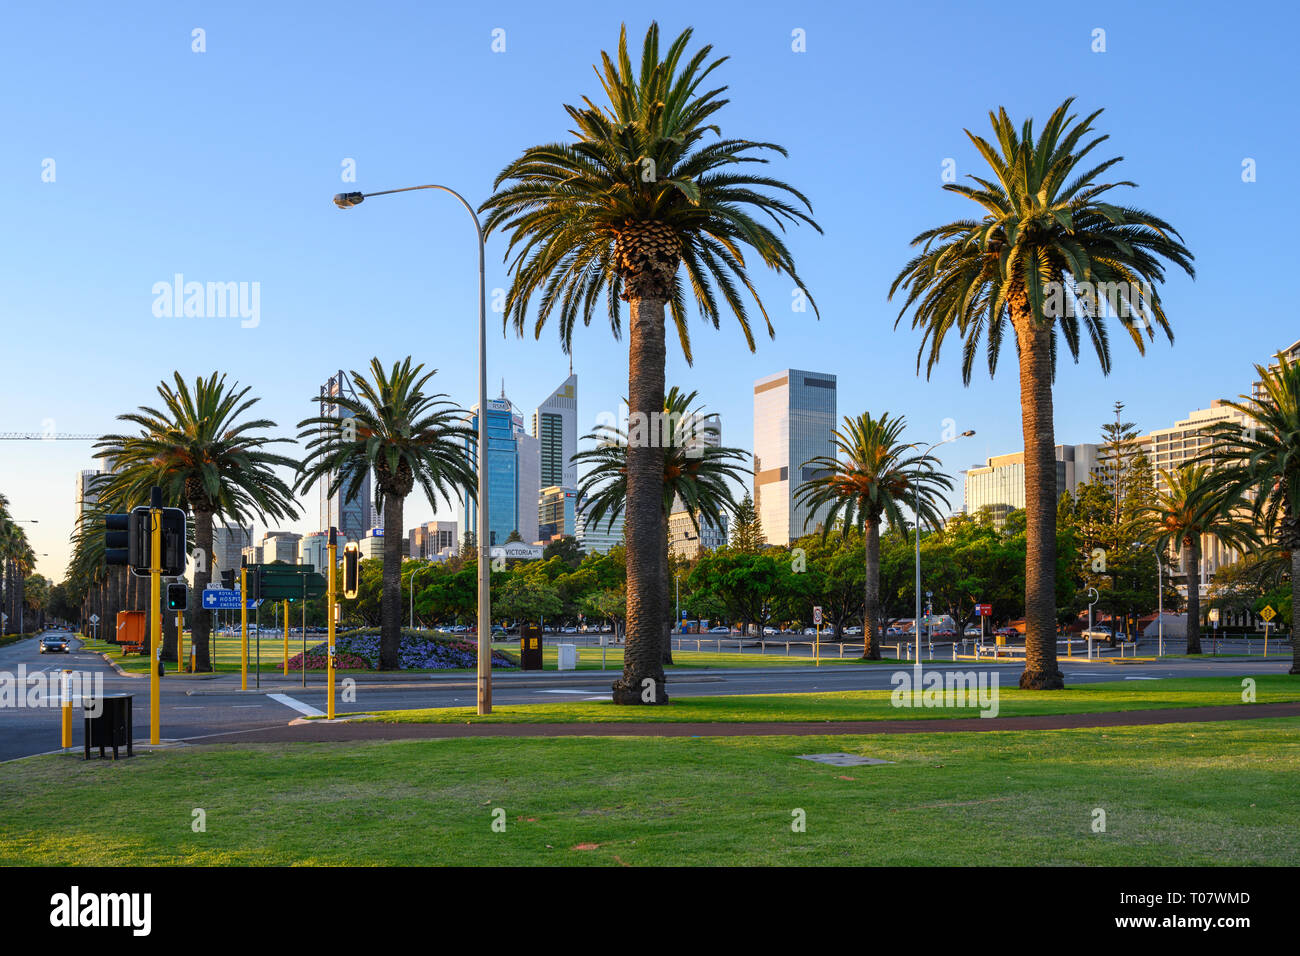 Evening view of Riverside Drive seen from Langley Park, Perth, Western Australia. Stock Photo